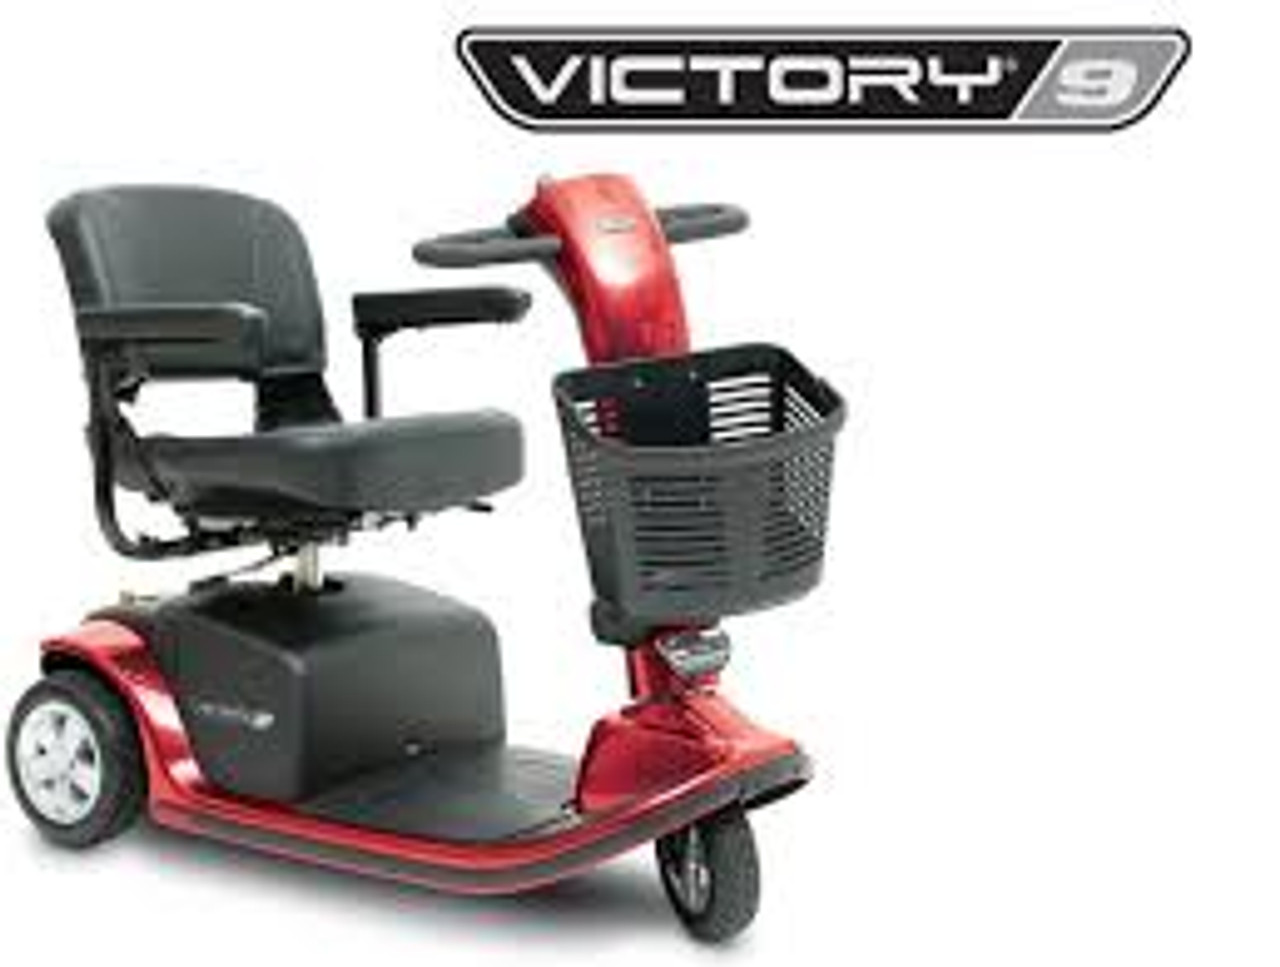 Victory 10, 3-Wheel Luxury Scooter - Pride Mobility